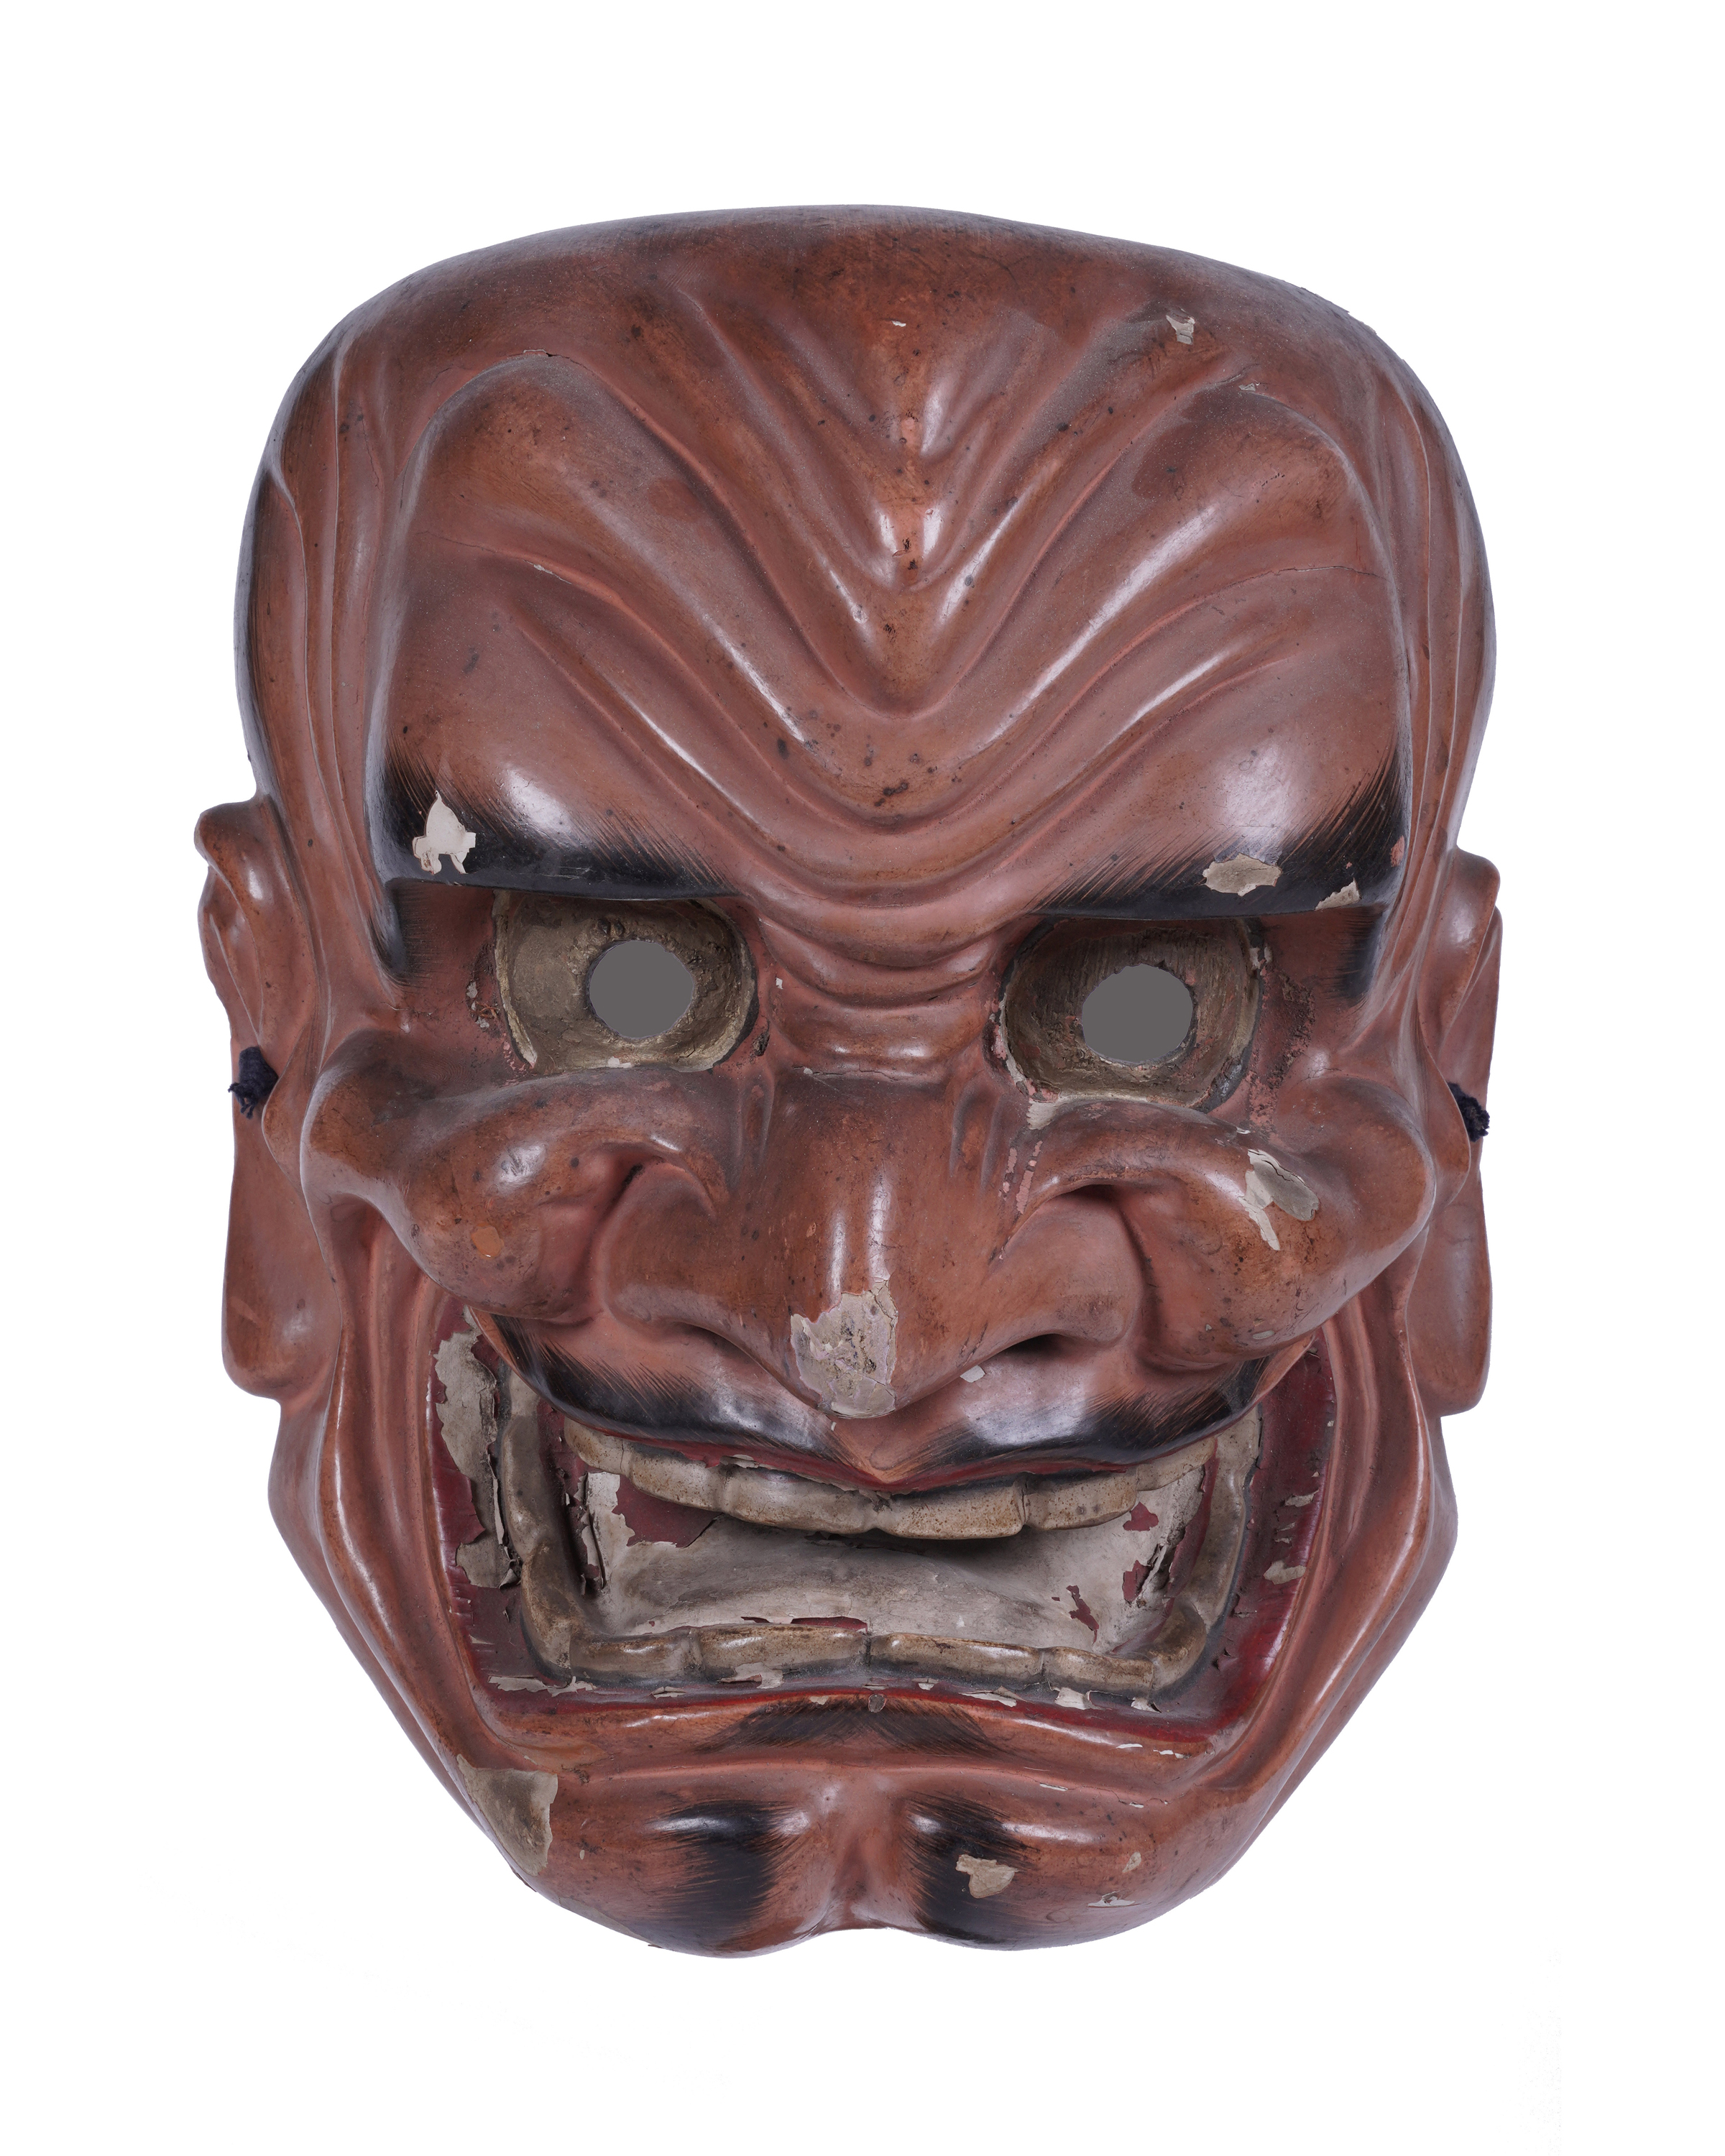 .A SIGNED RED LACQUERED WOODEN MASK Japan, 19th century The inner part bearing a signature. H: 26,